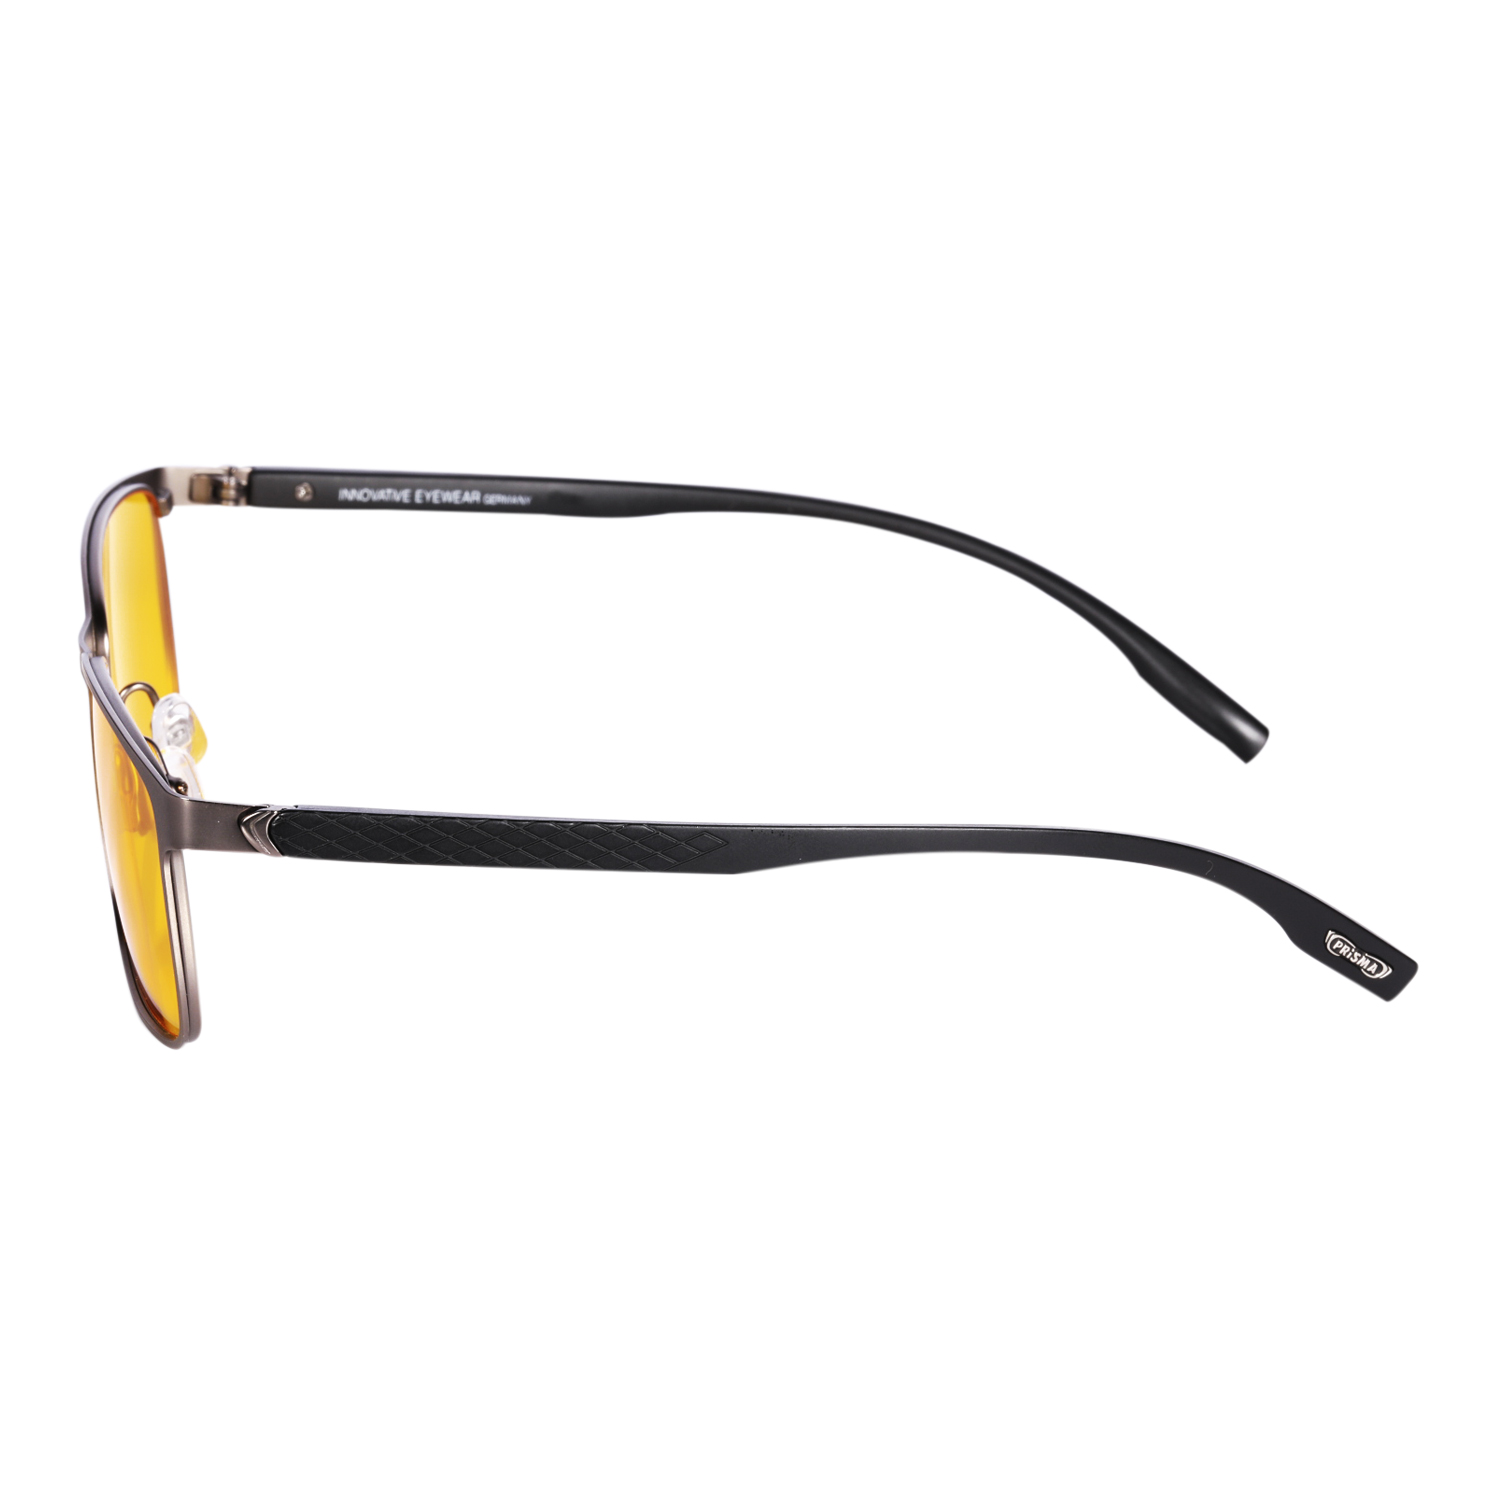 0c82c68403 ... Preview  PRiSMA blue light blocking glasses LiMBURG - bluelightprotect  LiTE - LB704 ...